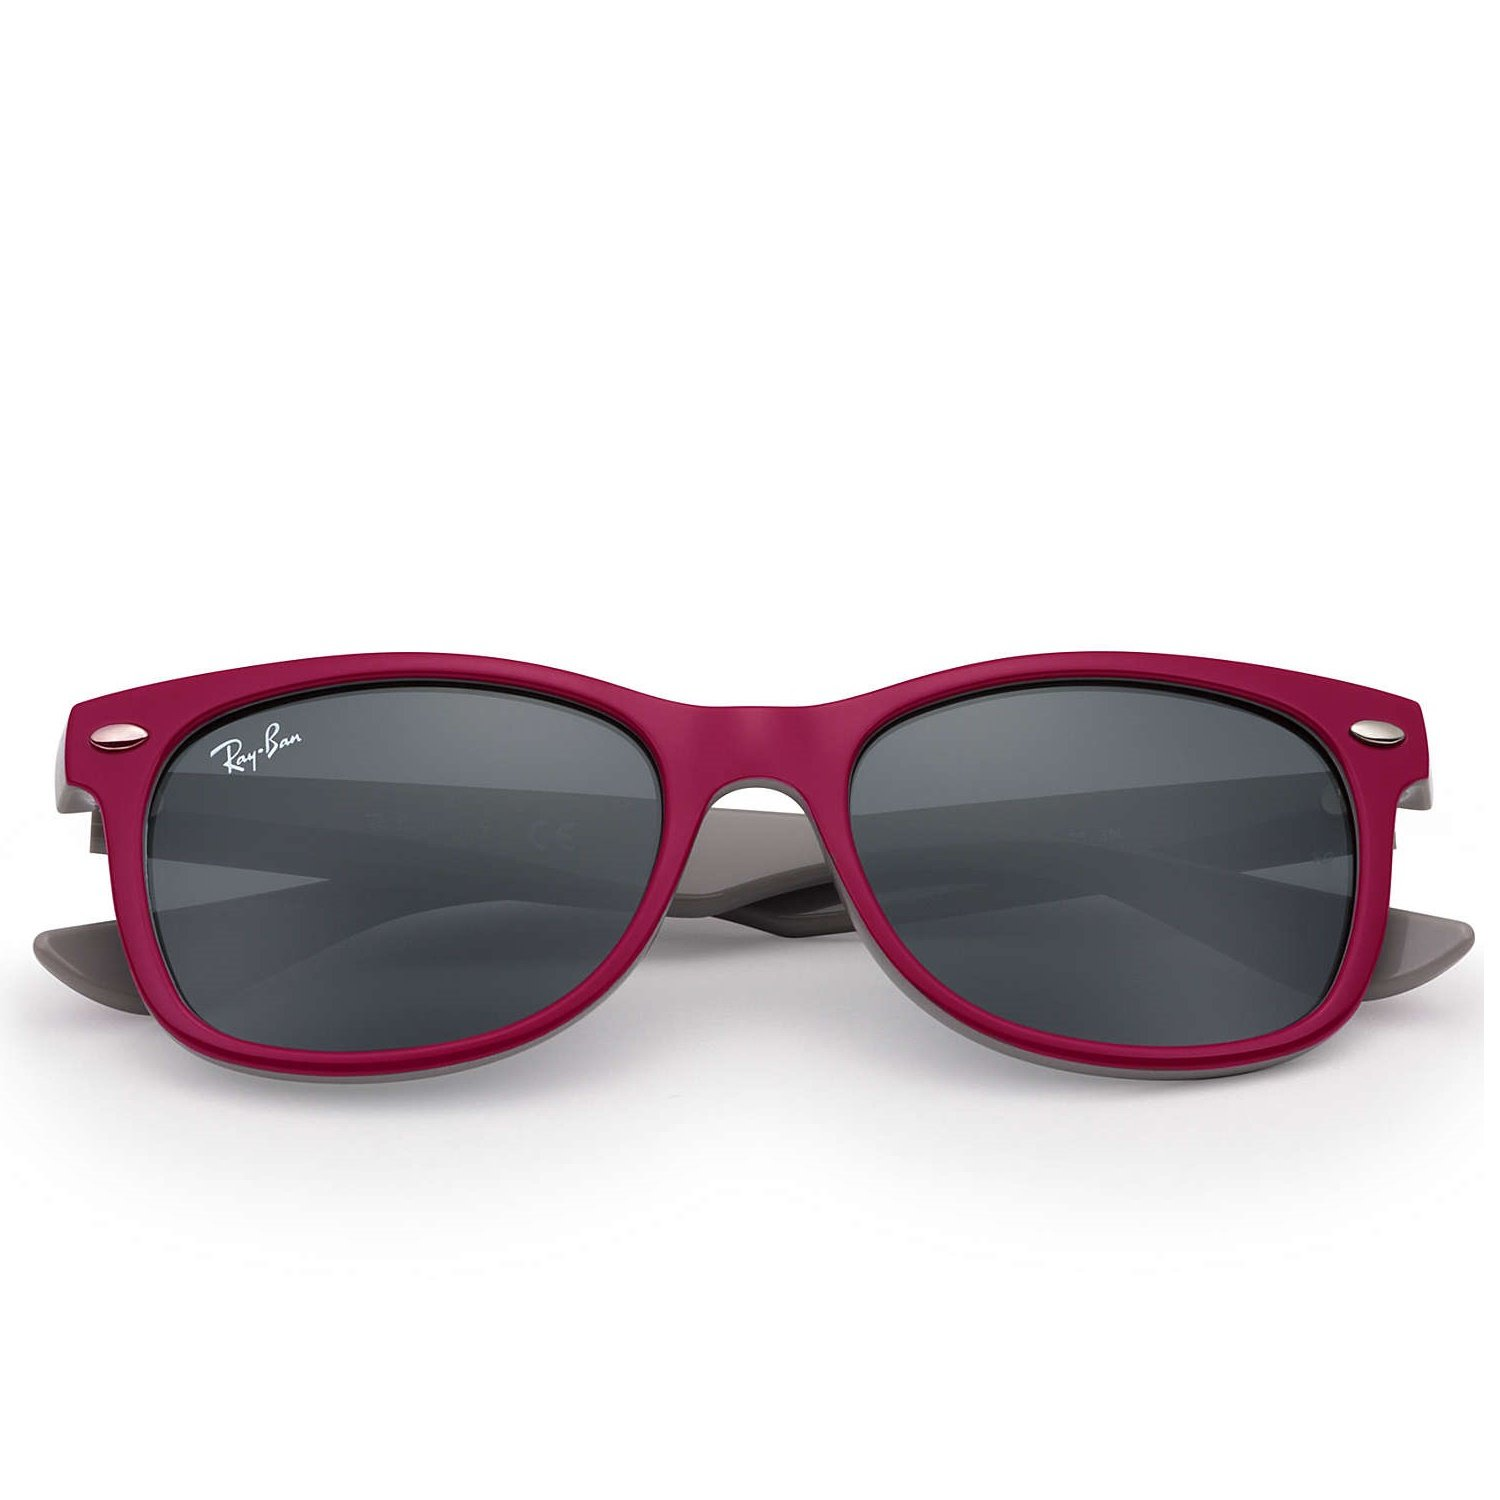 Ray-Ban Jr New Wayfarer Sunglasses - Berry Red/Grey - 48mm